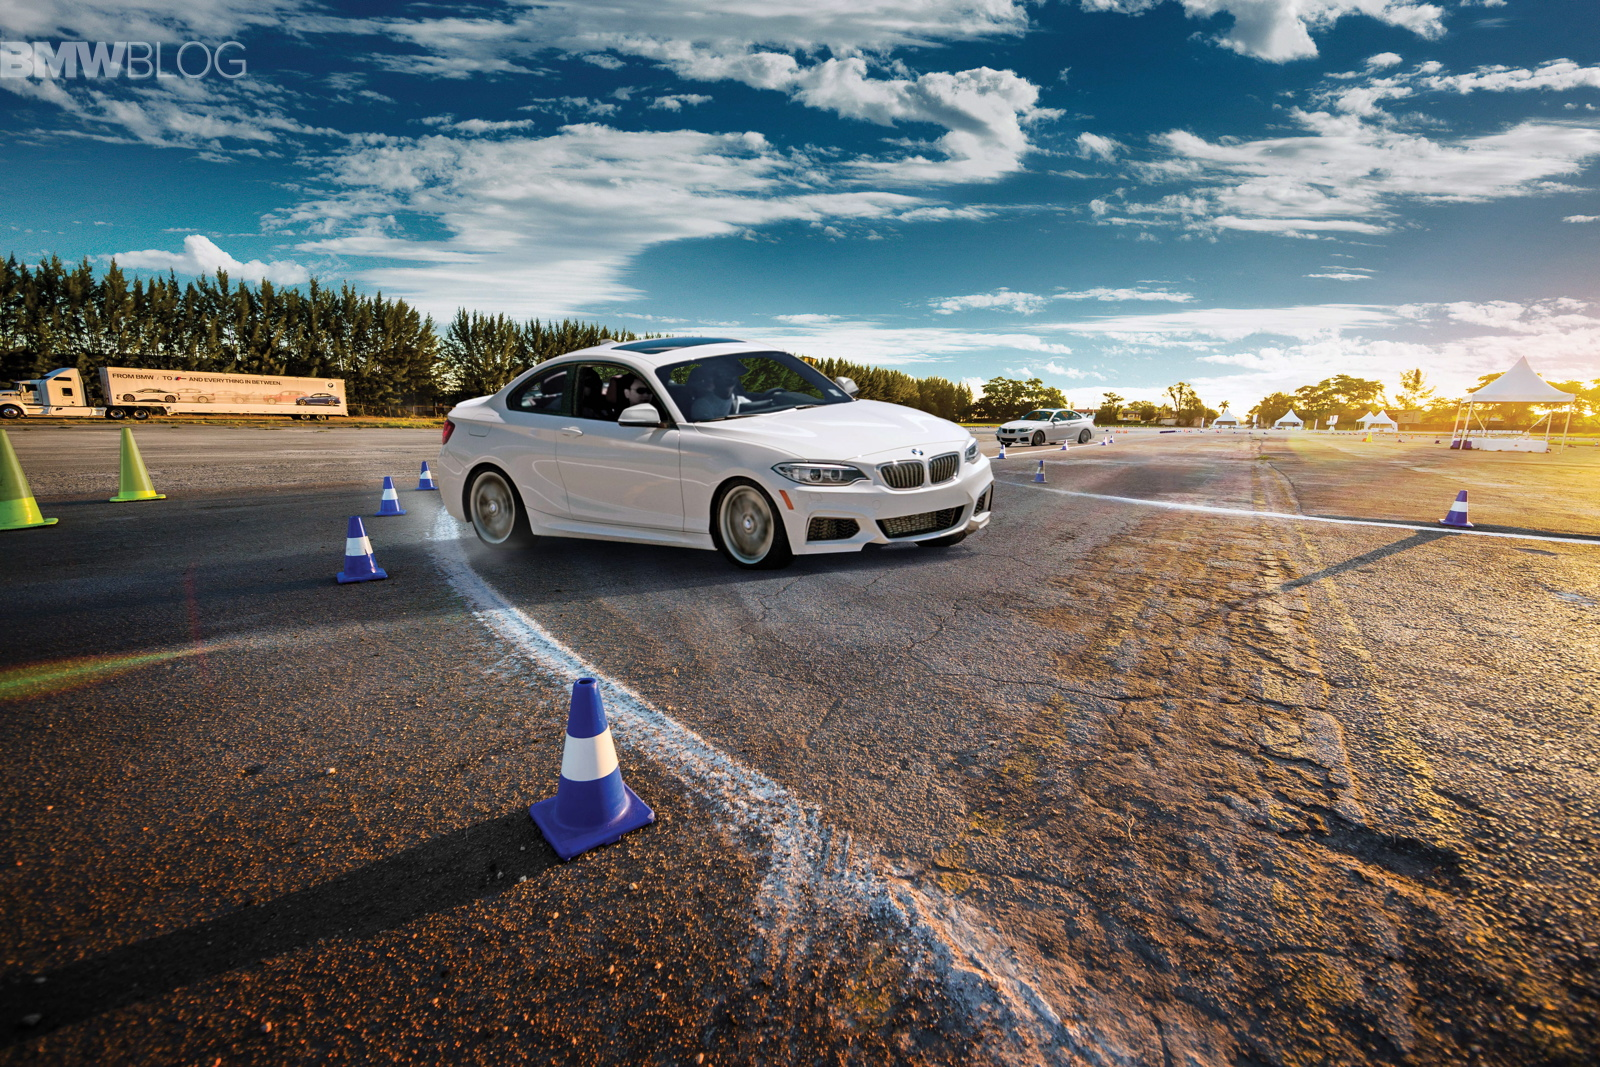 Bmw Driving School >> BMW is launching the 2015 Ultimate Driving Experience tour